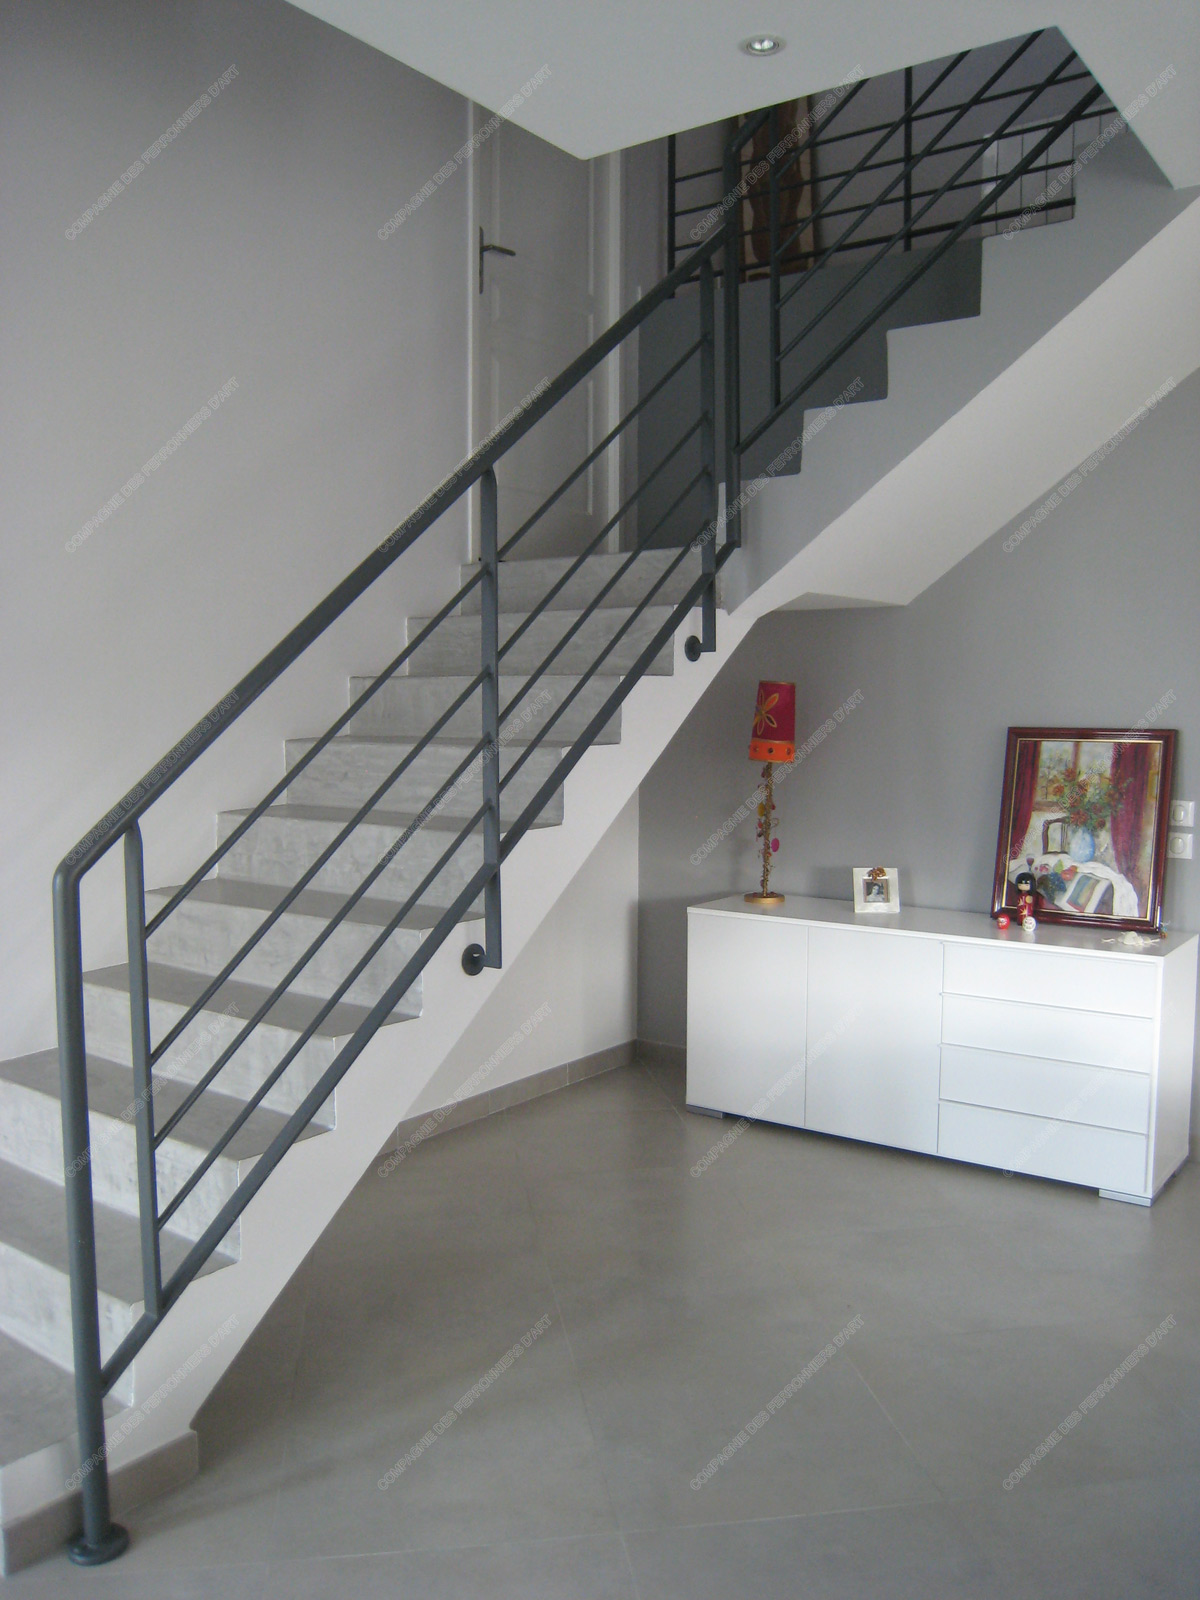 Rampes d 39 escalier en fer forg design fonctionnel mod le for Rampe escalier moderne